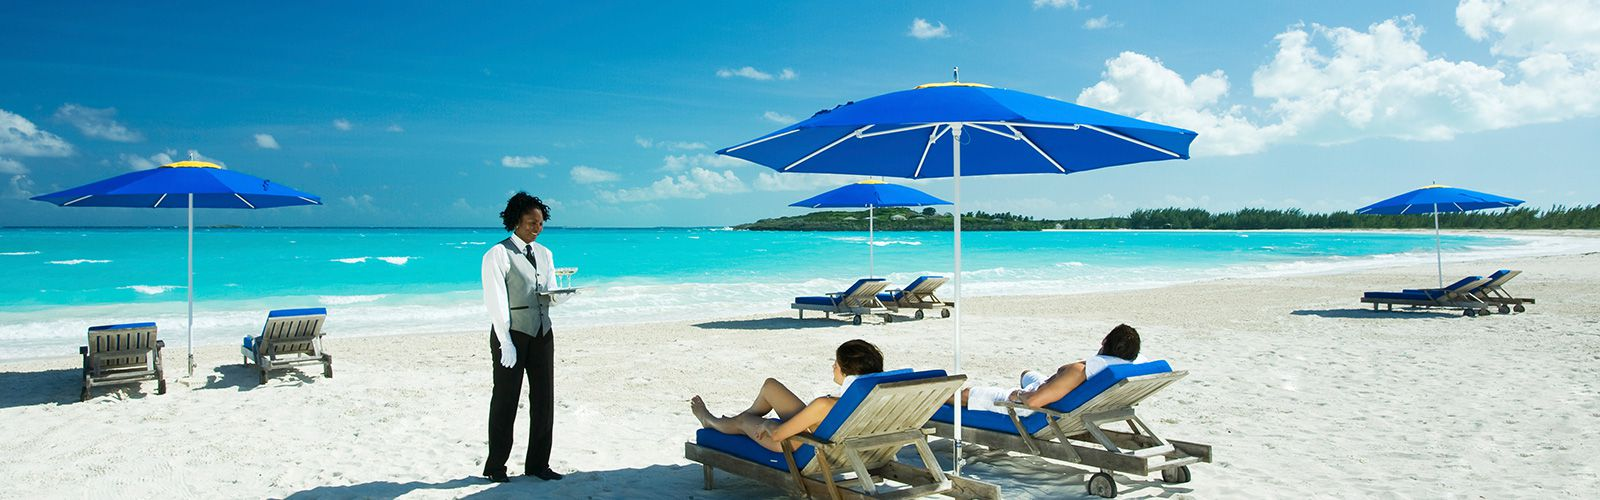 Sandals shoes holidays -  Sandals Holidays 2016 2017